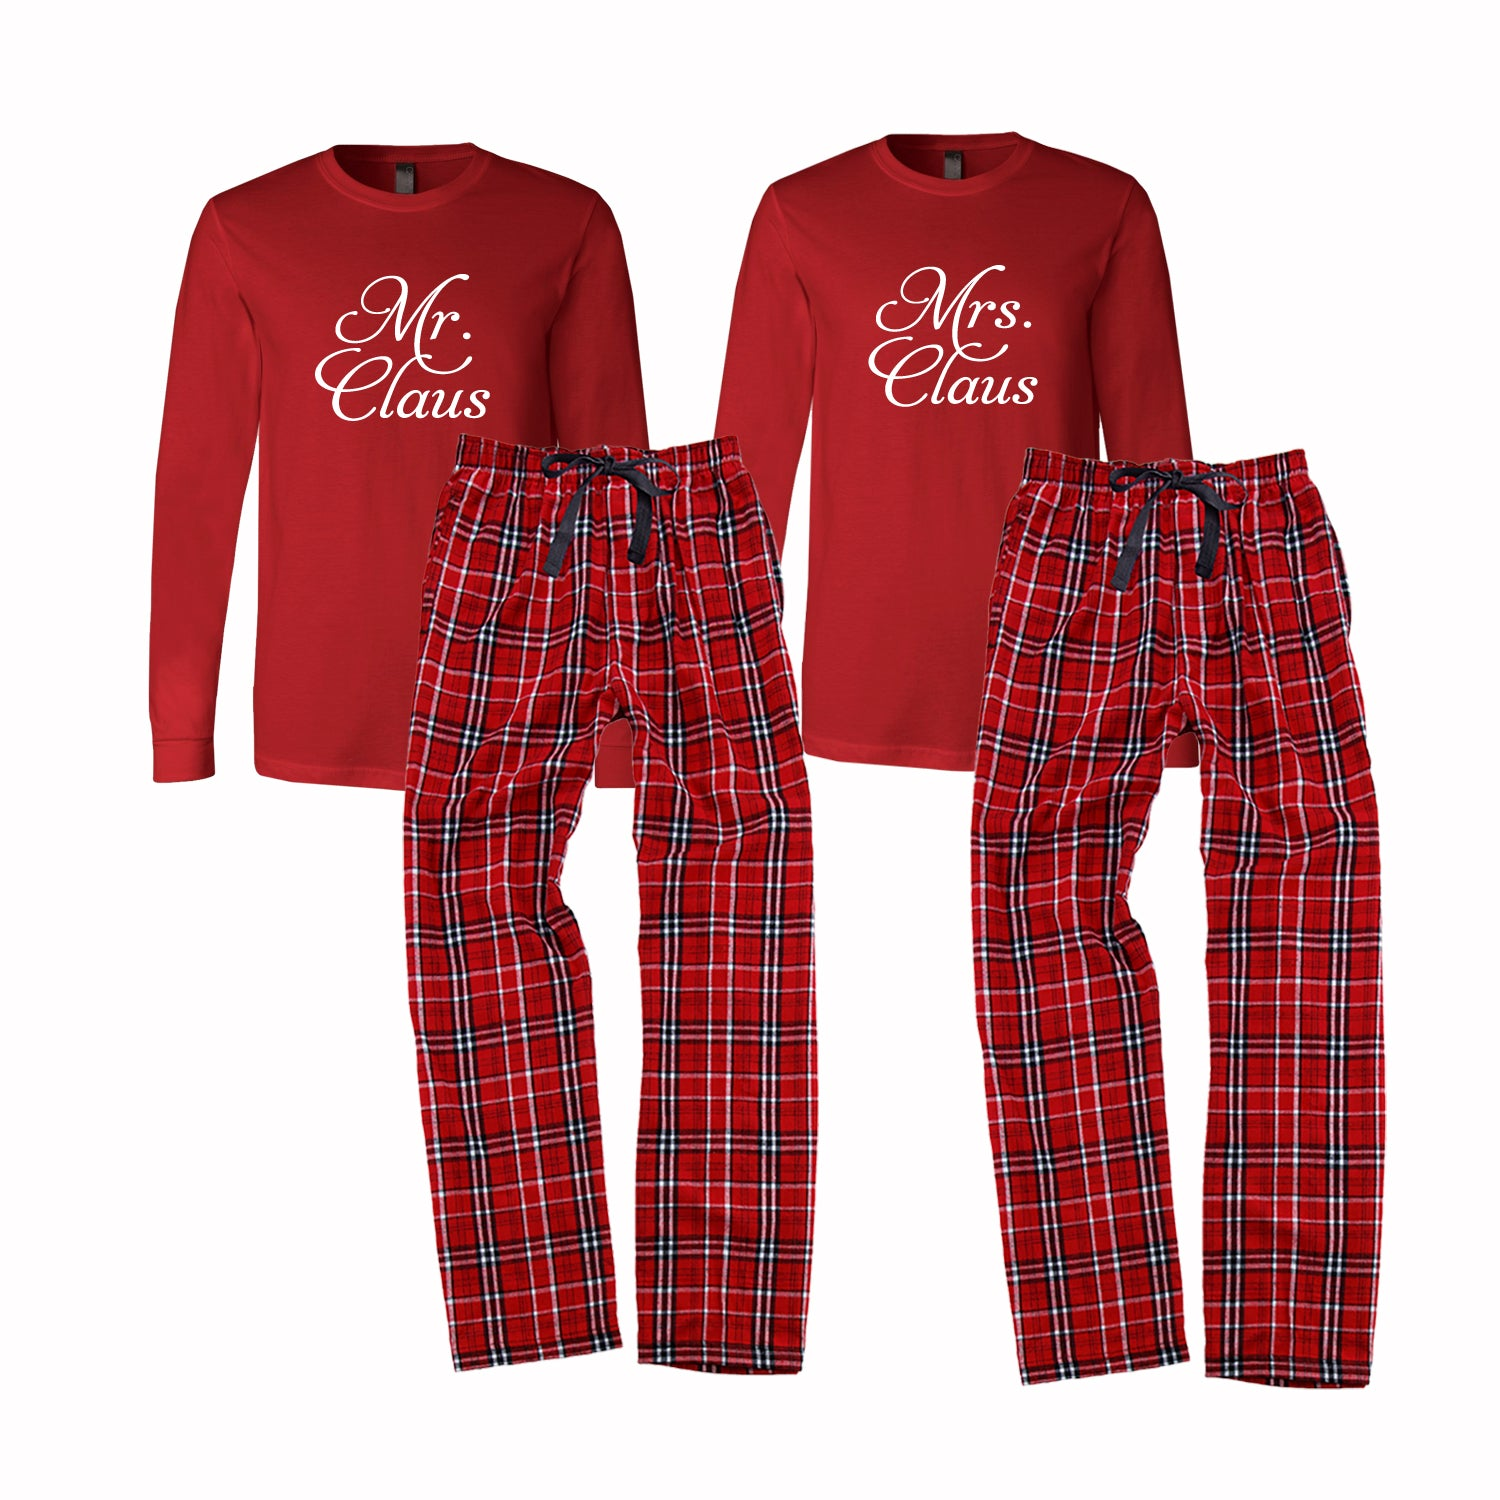 Mr. and Mrs. Claus Pajama Set